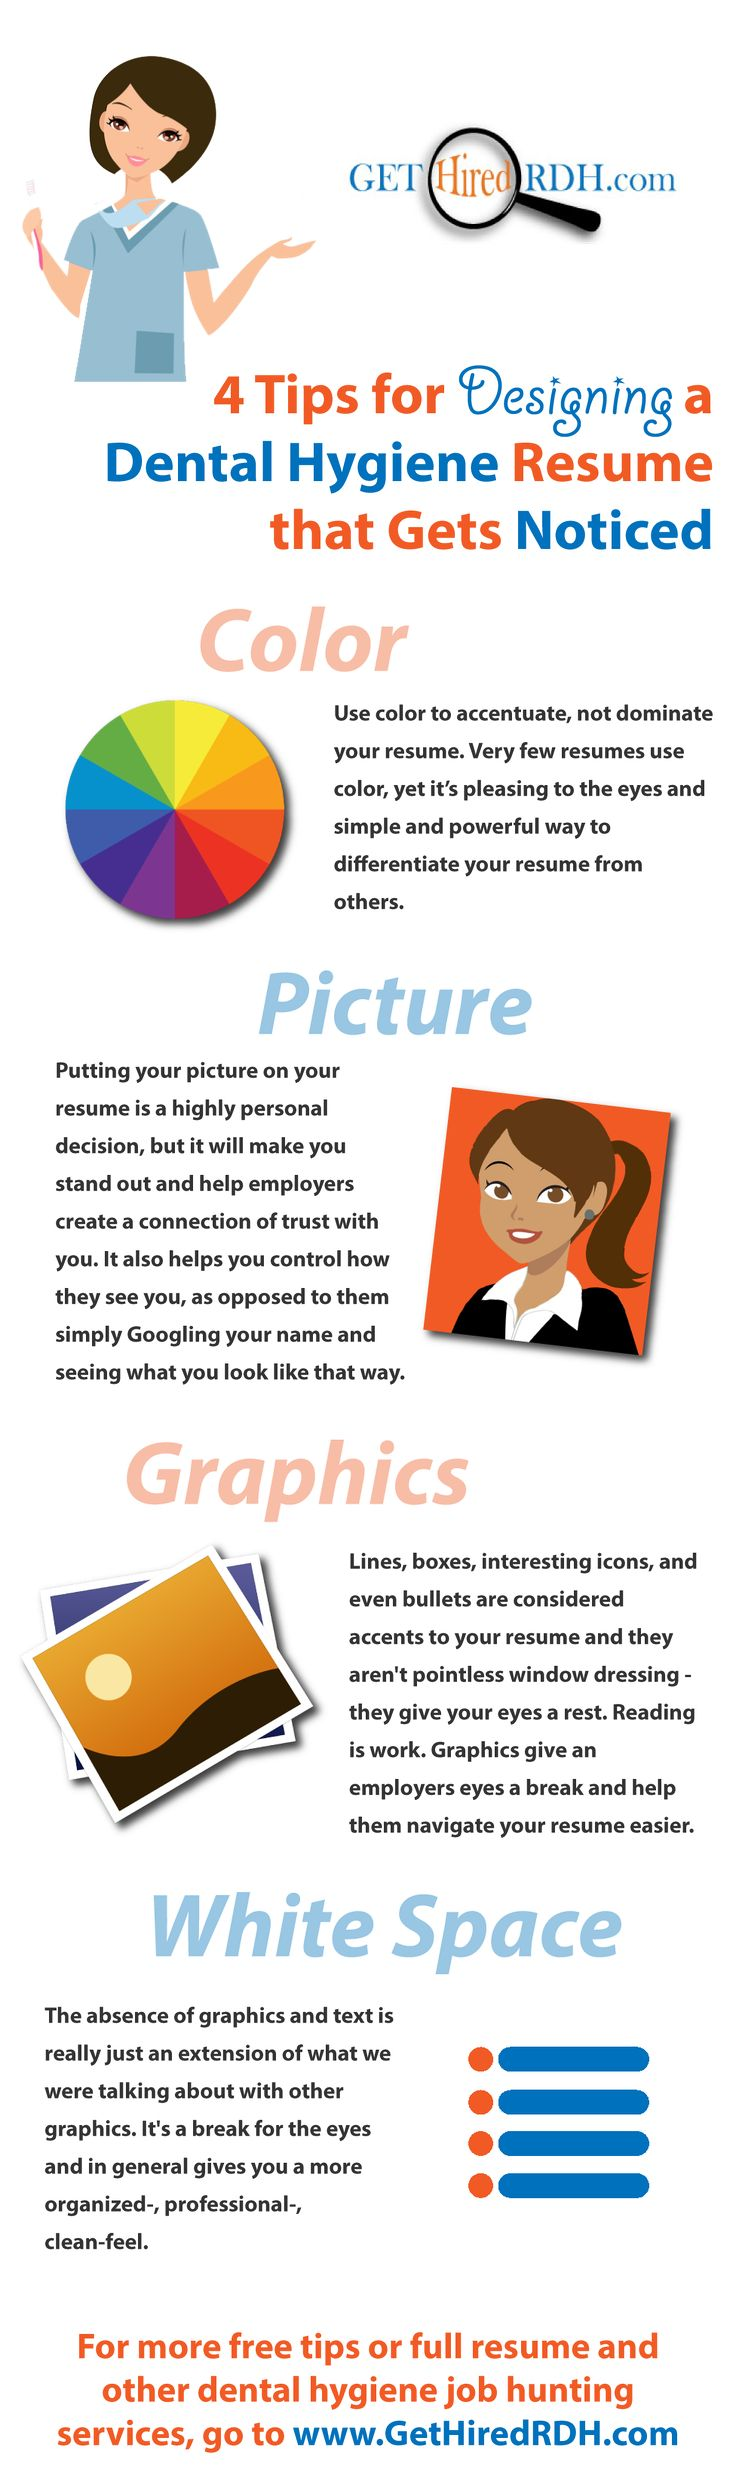 17 best images about rdh job hunting tips dental 4 tips for designing a dental hygiene resume that gets noticed